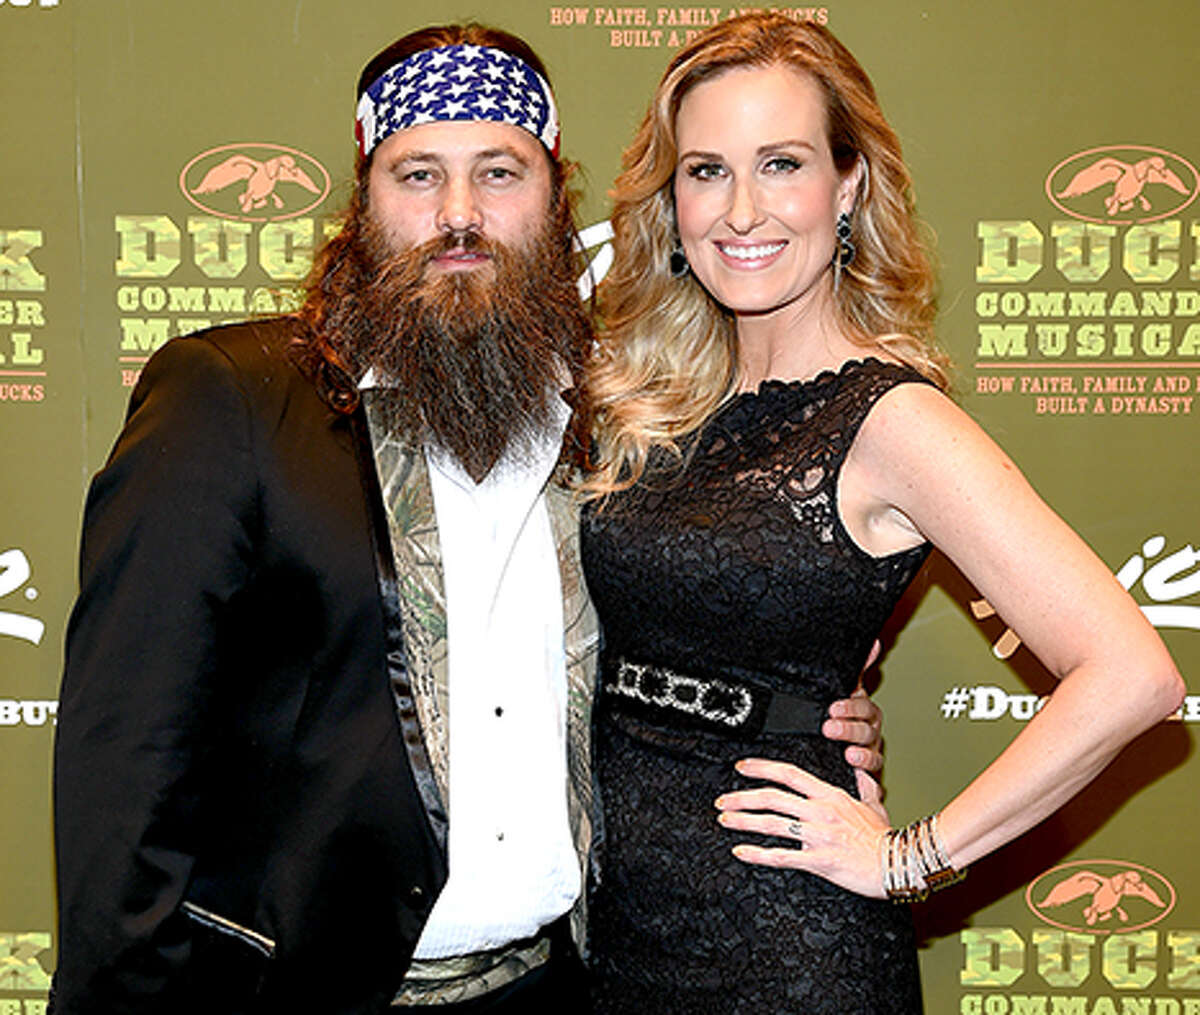 Willie and Korie Robertson announced they're adopting a 13-year-old boy. Keep clicking to see the